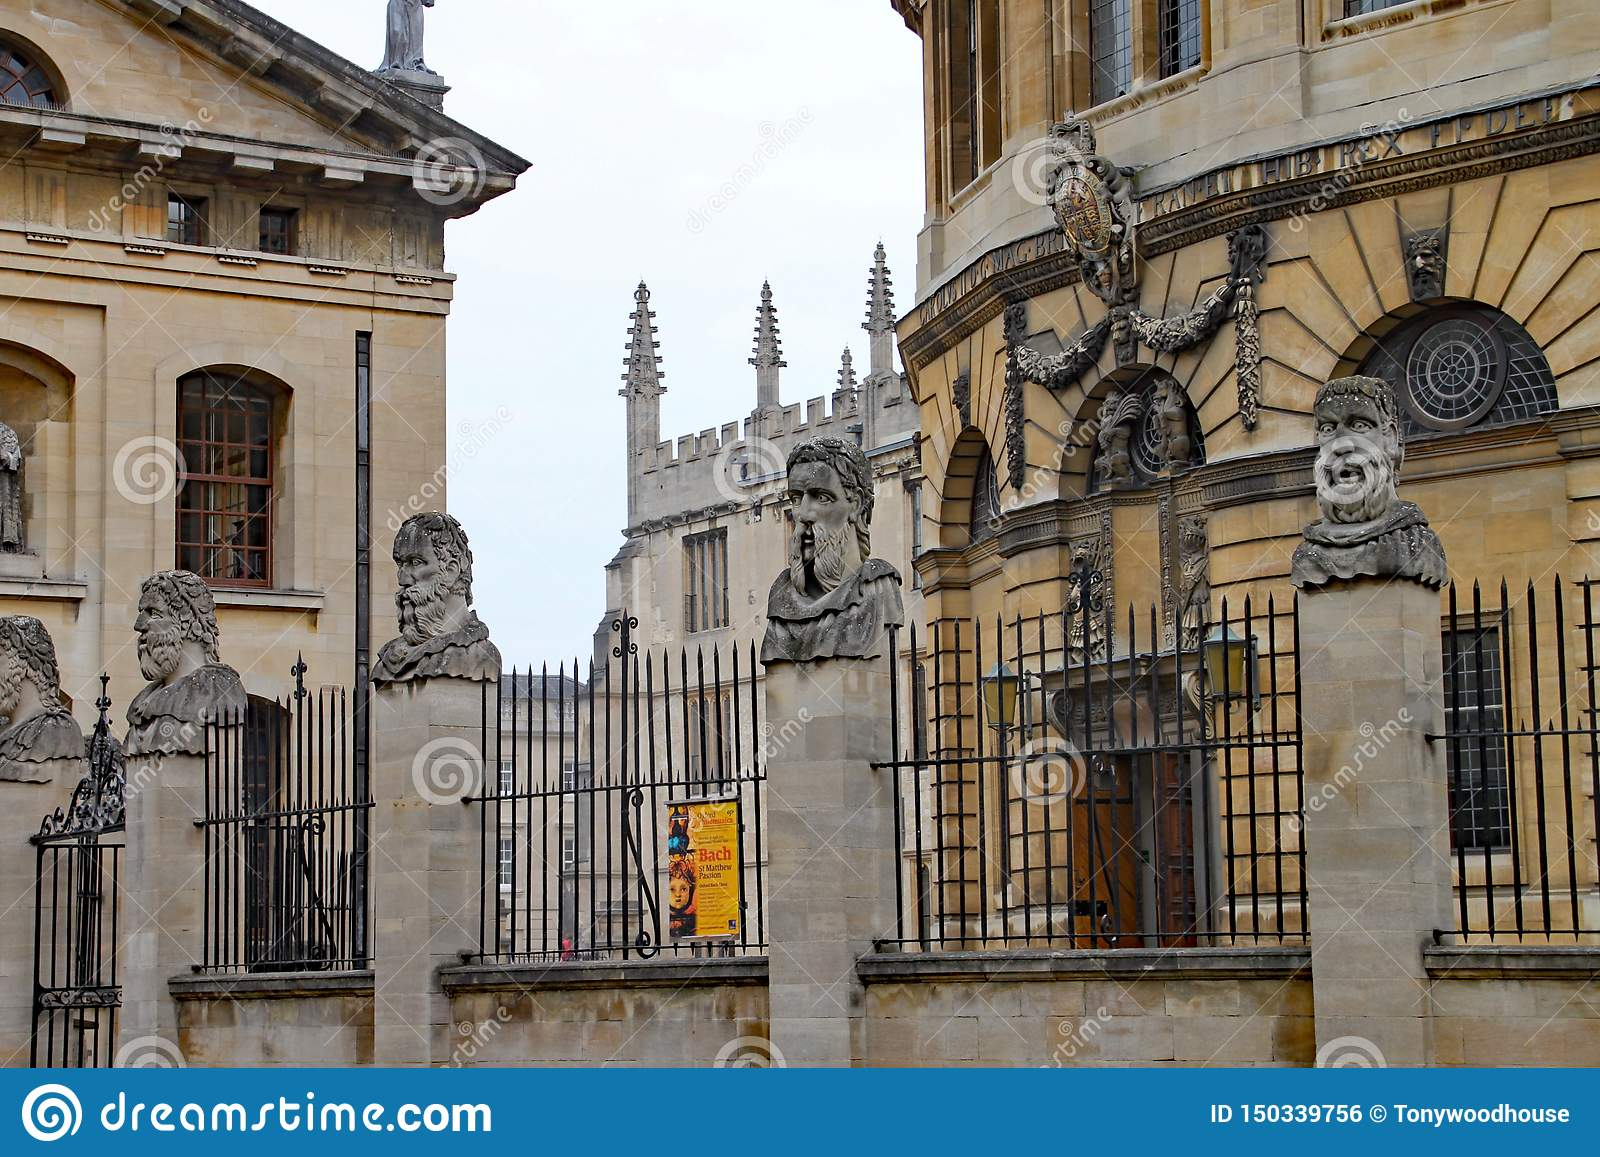 The Sheldonian Theatre with the Bodleian Library in the background